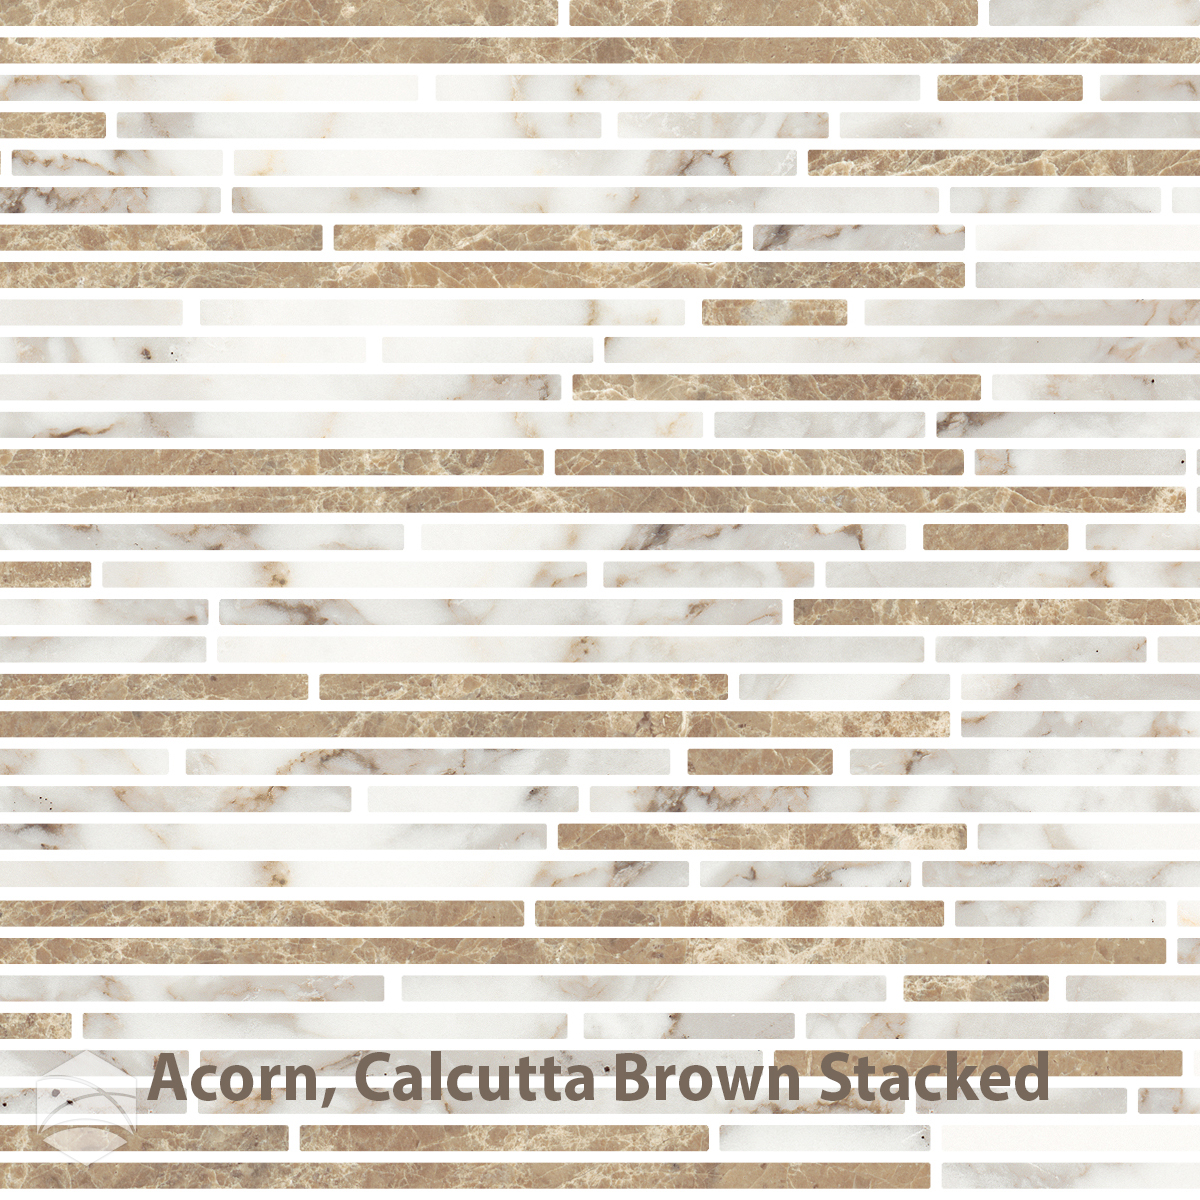 Acorn, Calcutta Brown Stacked LT_V2_12x12.jpg